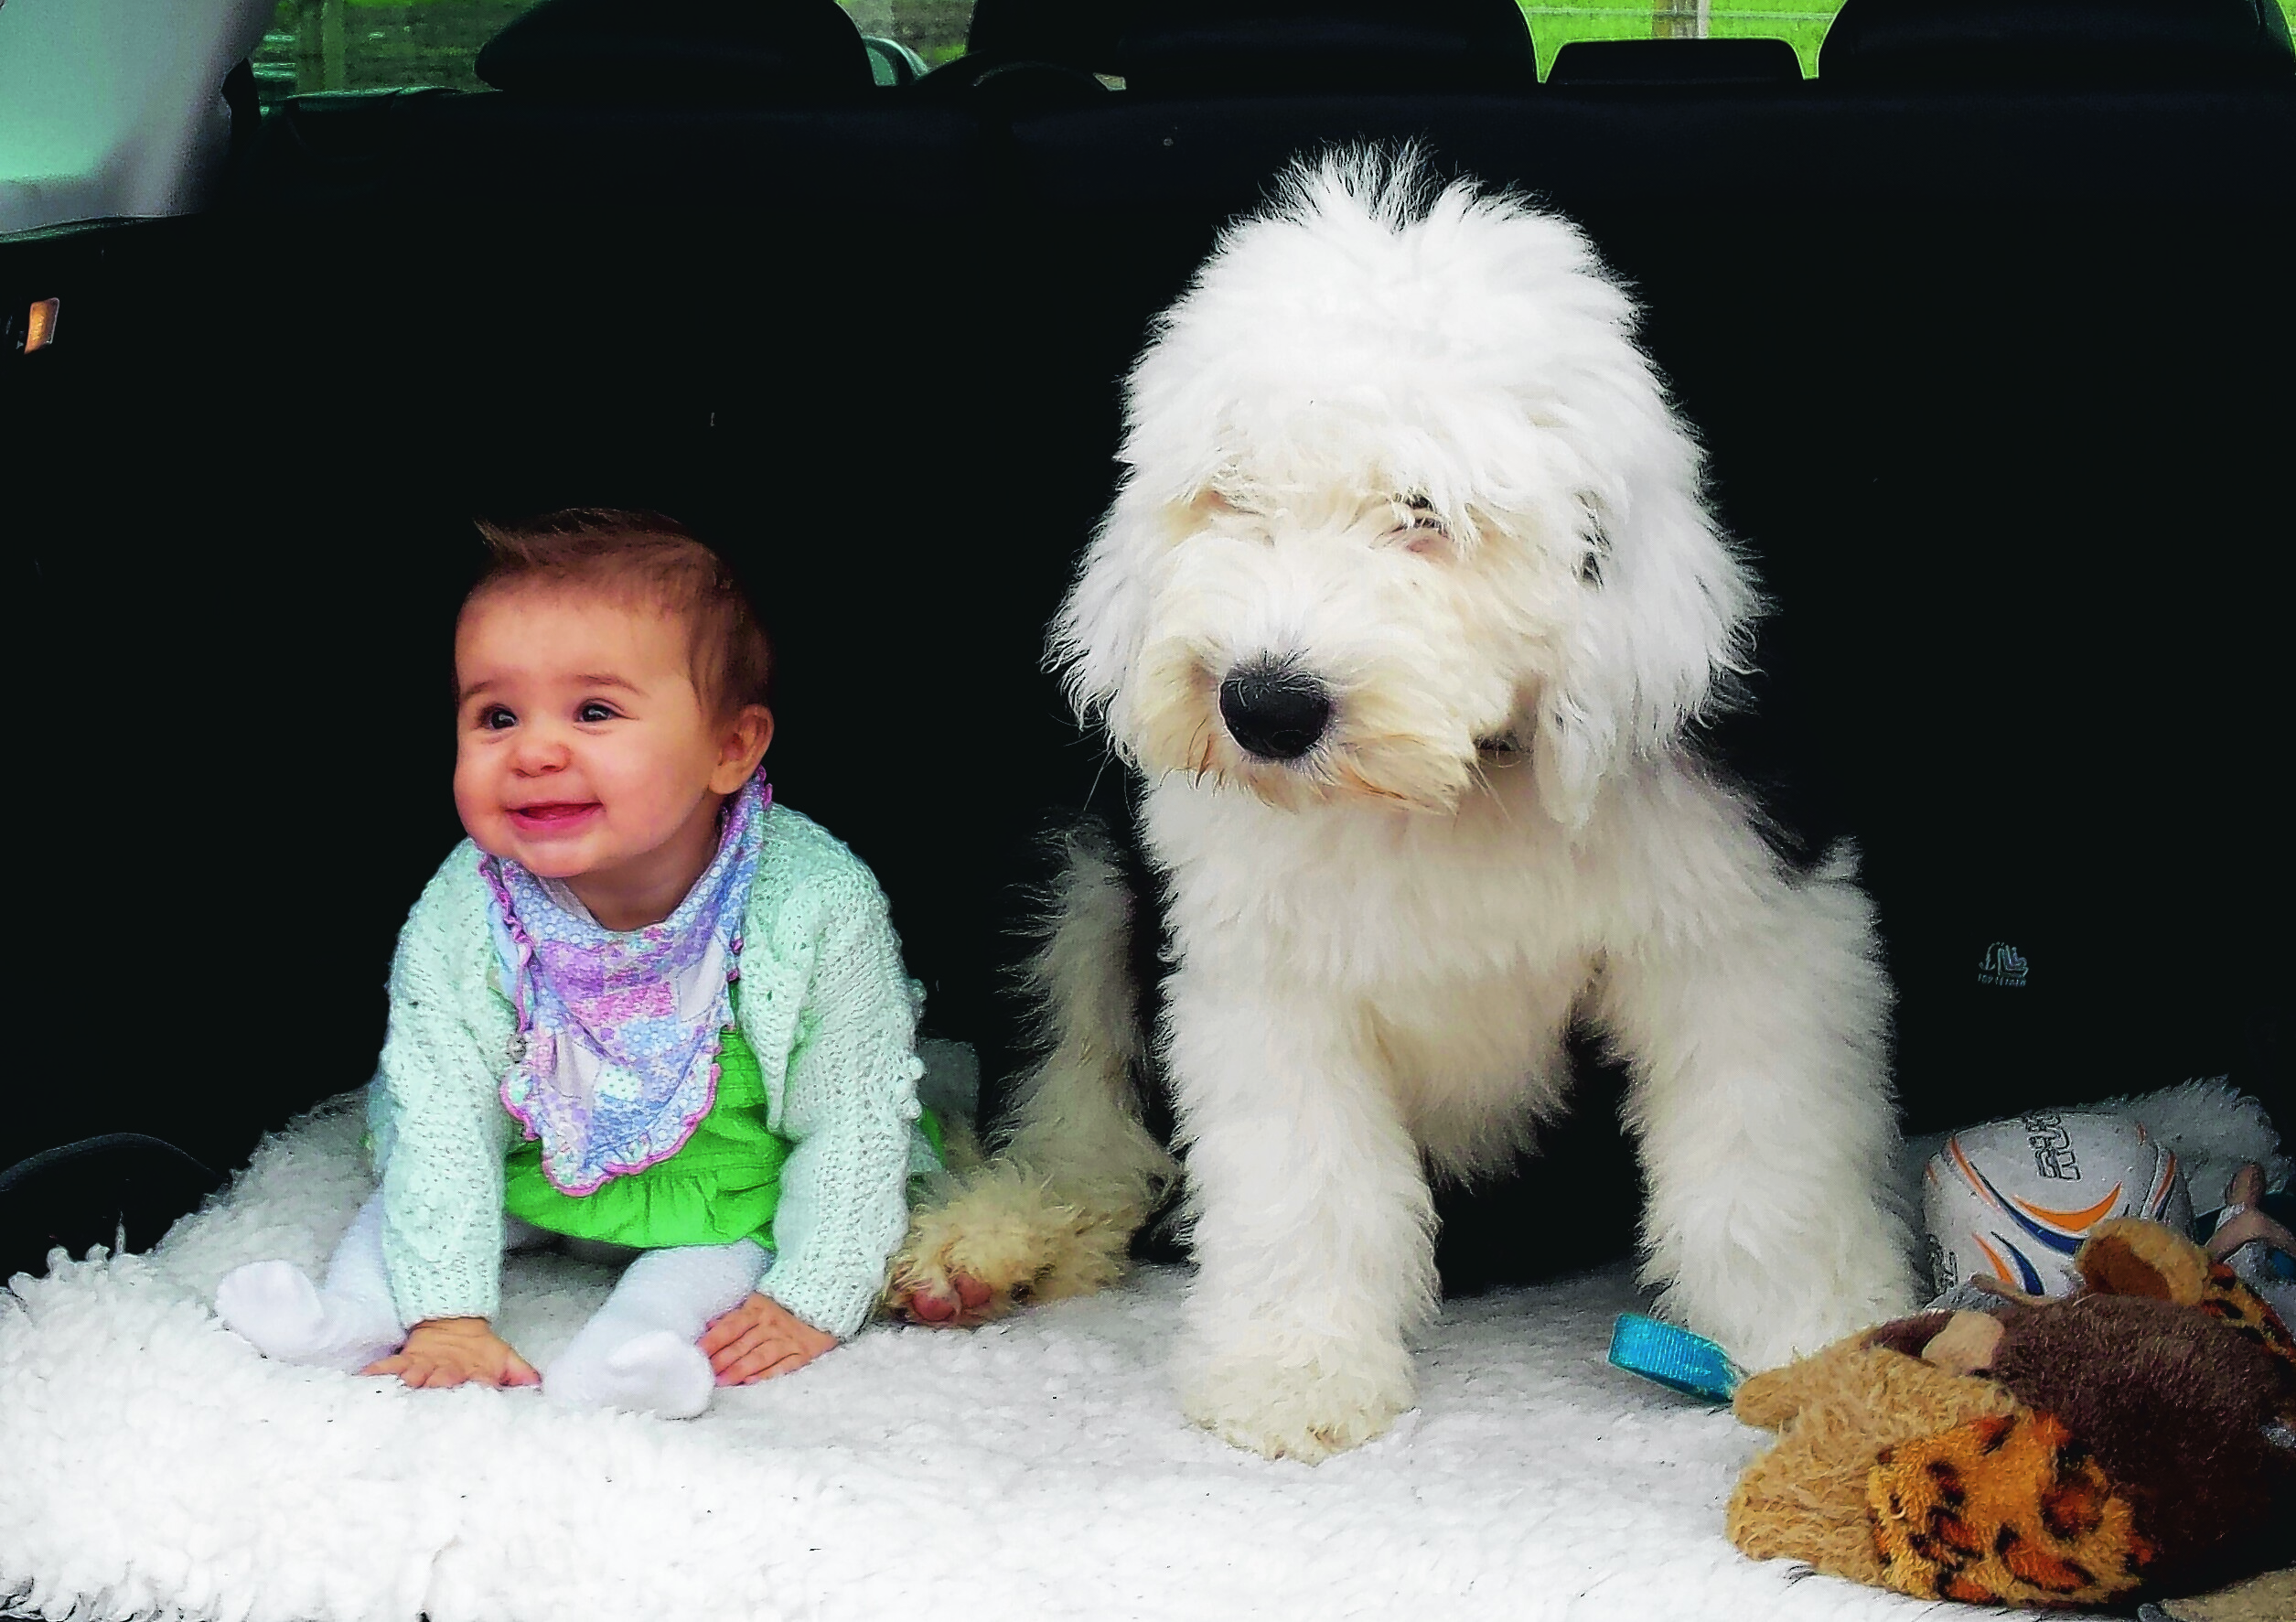 This is a picture of Dougal, a four month old old English sheep dog guarding seven month old Jessica. The pair live with Dawn Cowie-Mcinnes in Nairn and are our winners this week.